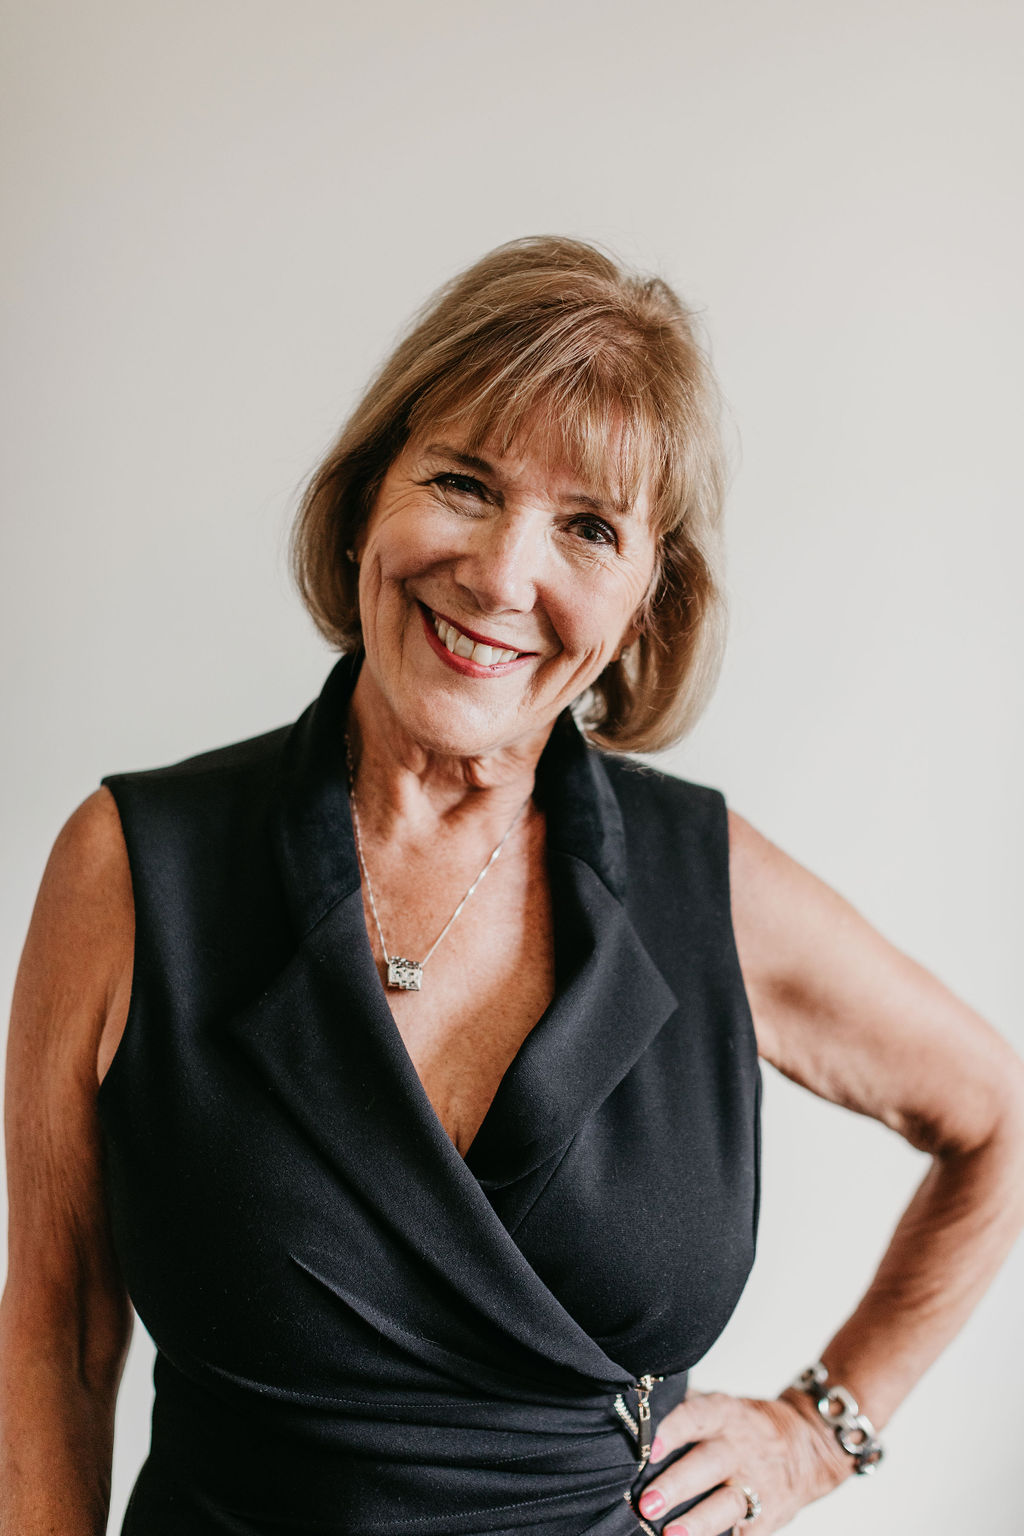 Luanne Hancey - My motto has always been to help you get moving and my goal is the result of you finding your happy home!